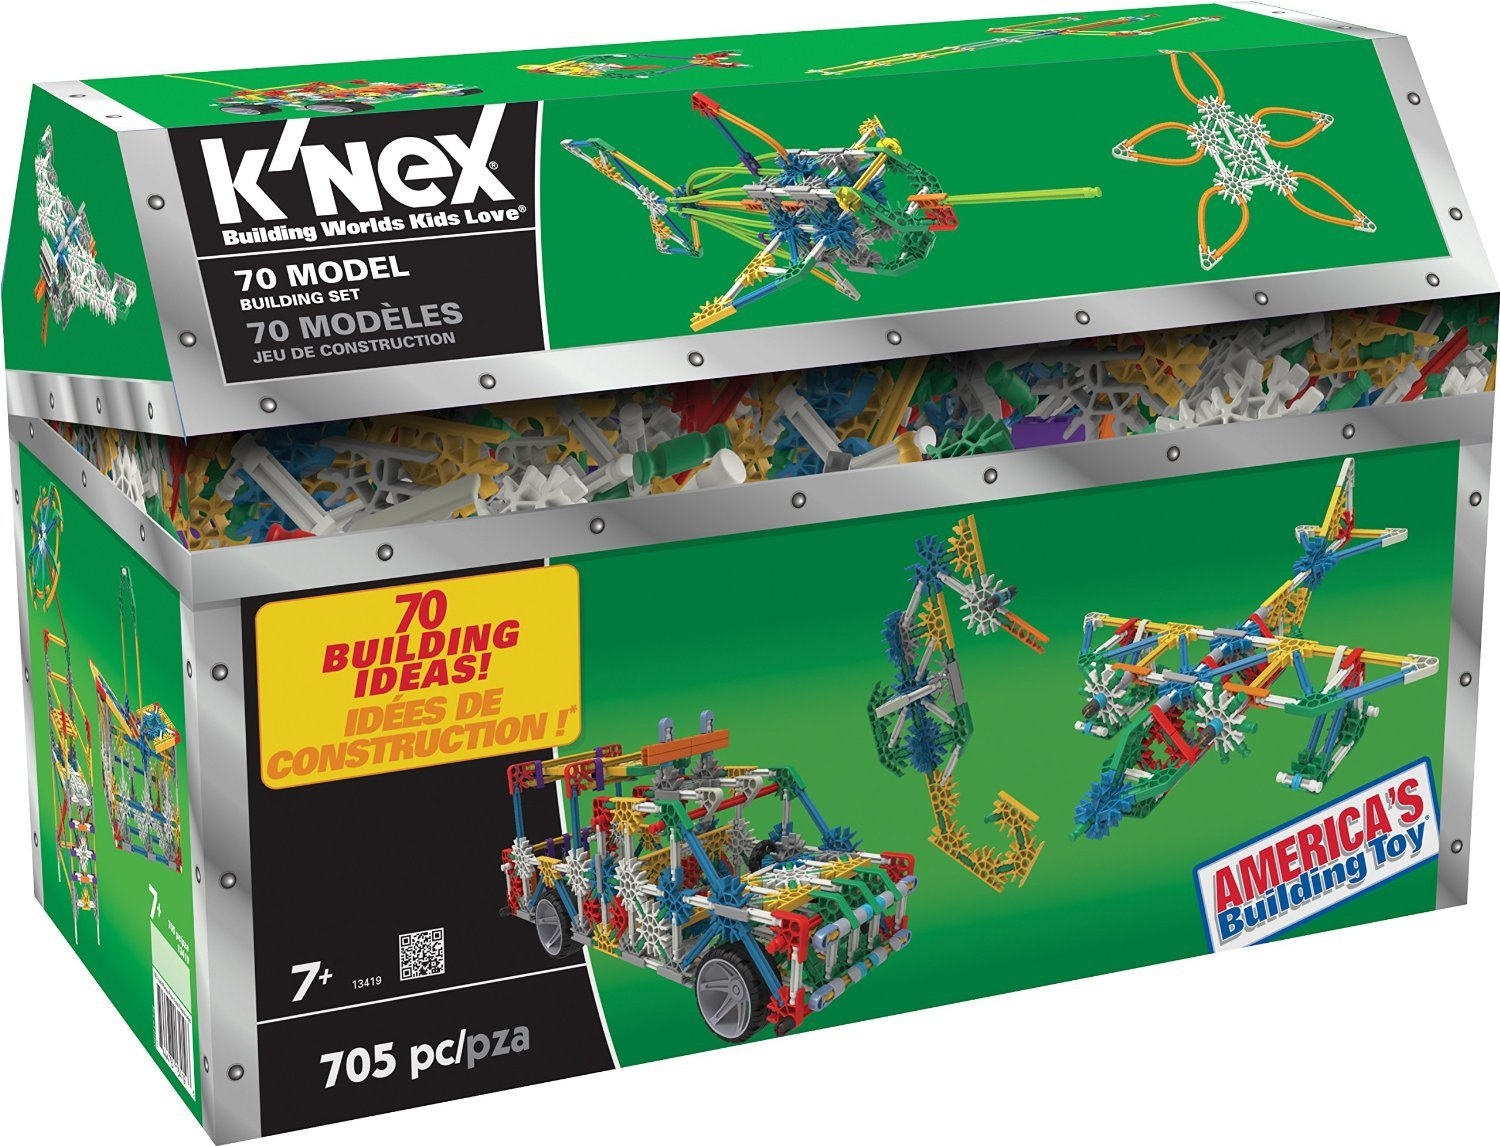 K'NEX 70 70 70 Model Building Set – 705 Pieces – Ages 7+ Engineering Education Toy 112d96